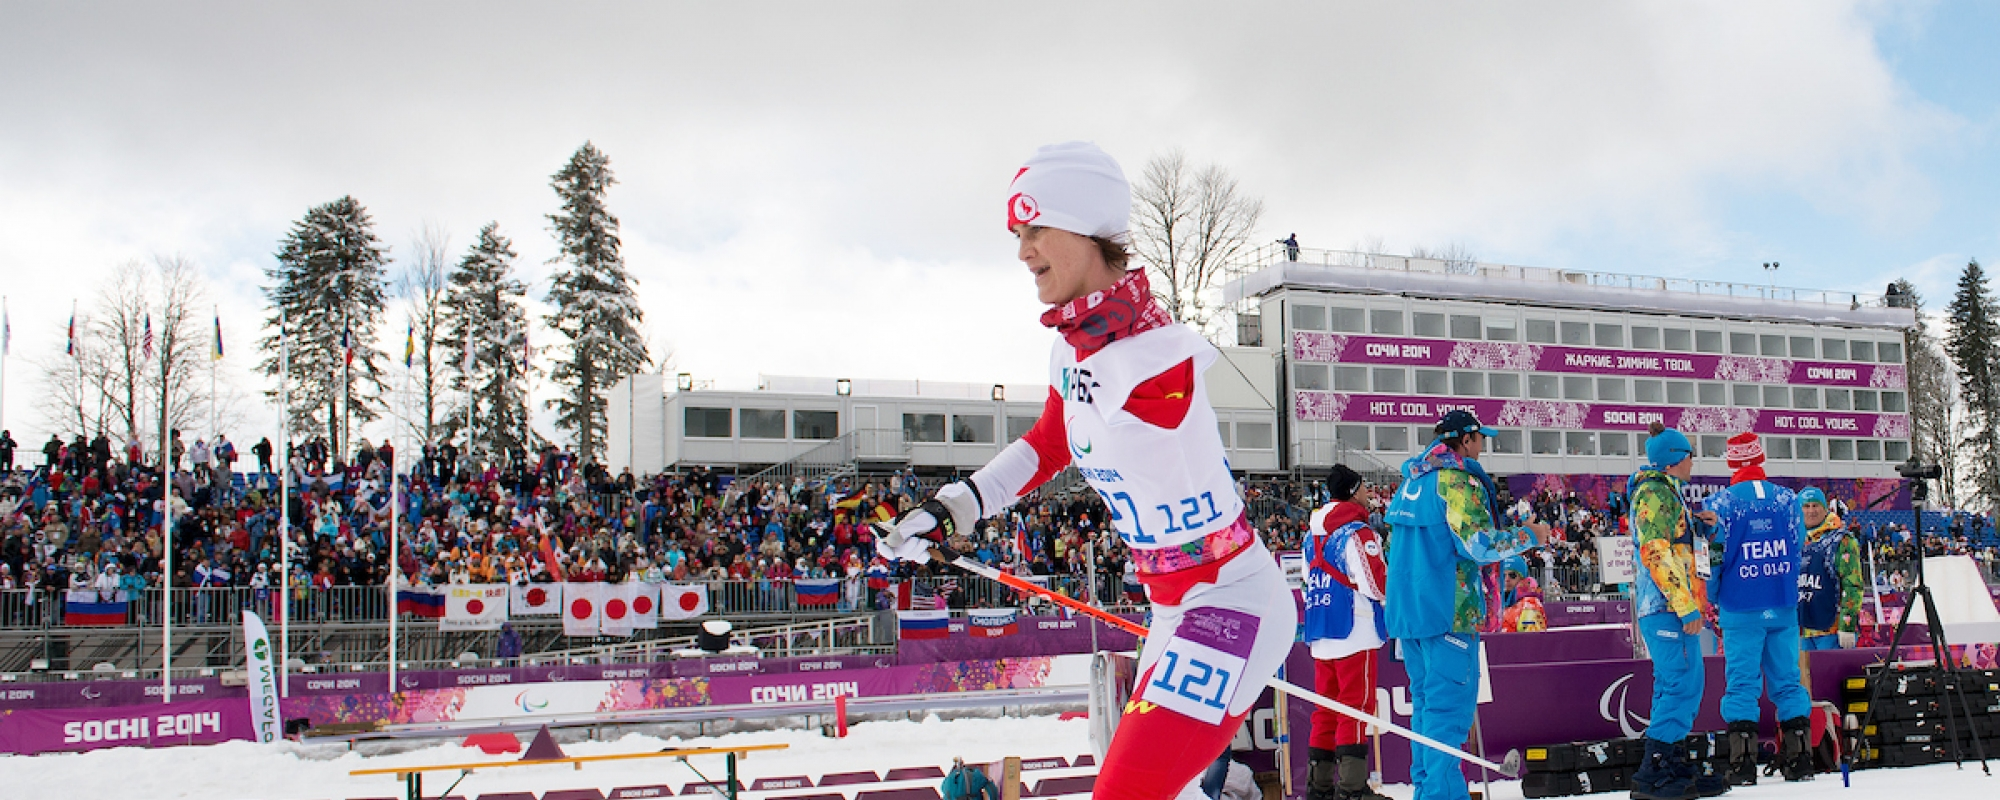 Caroline skiing in front of the stands